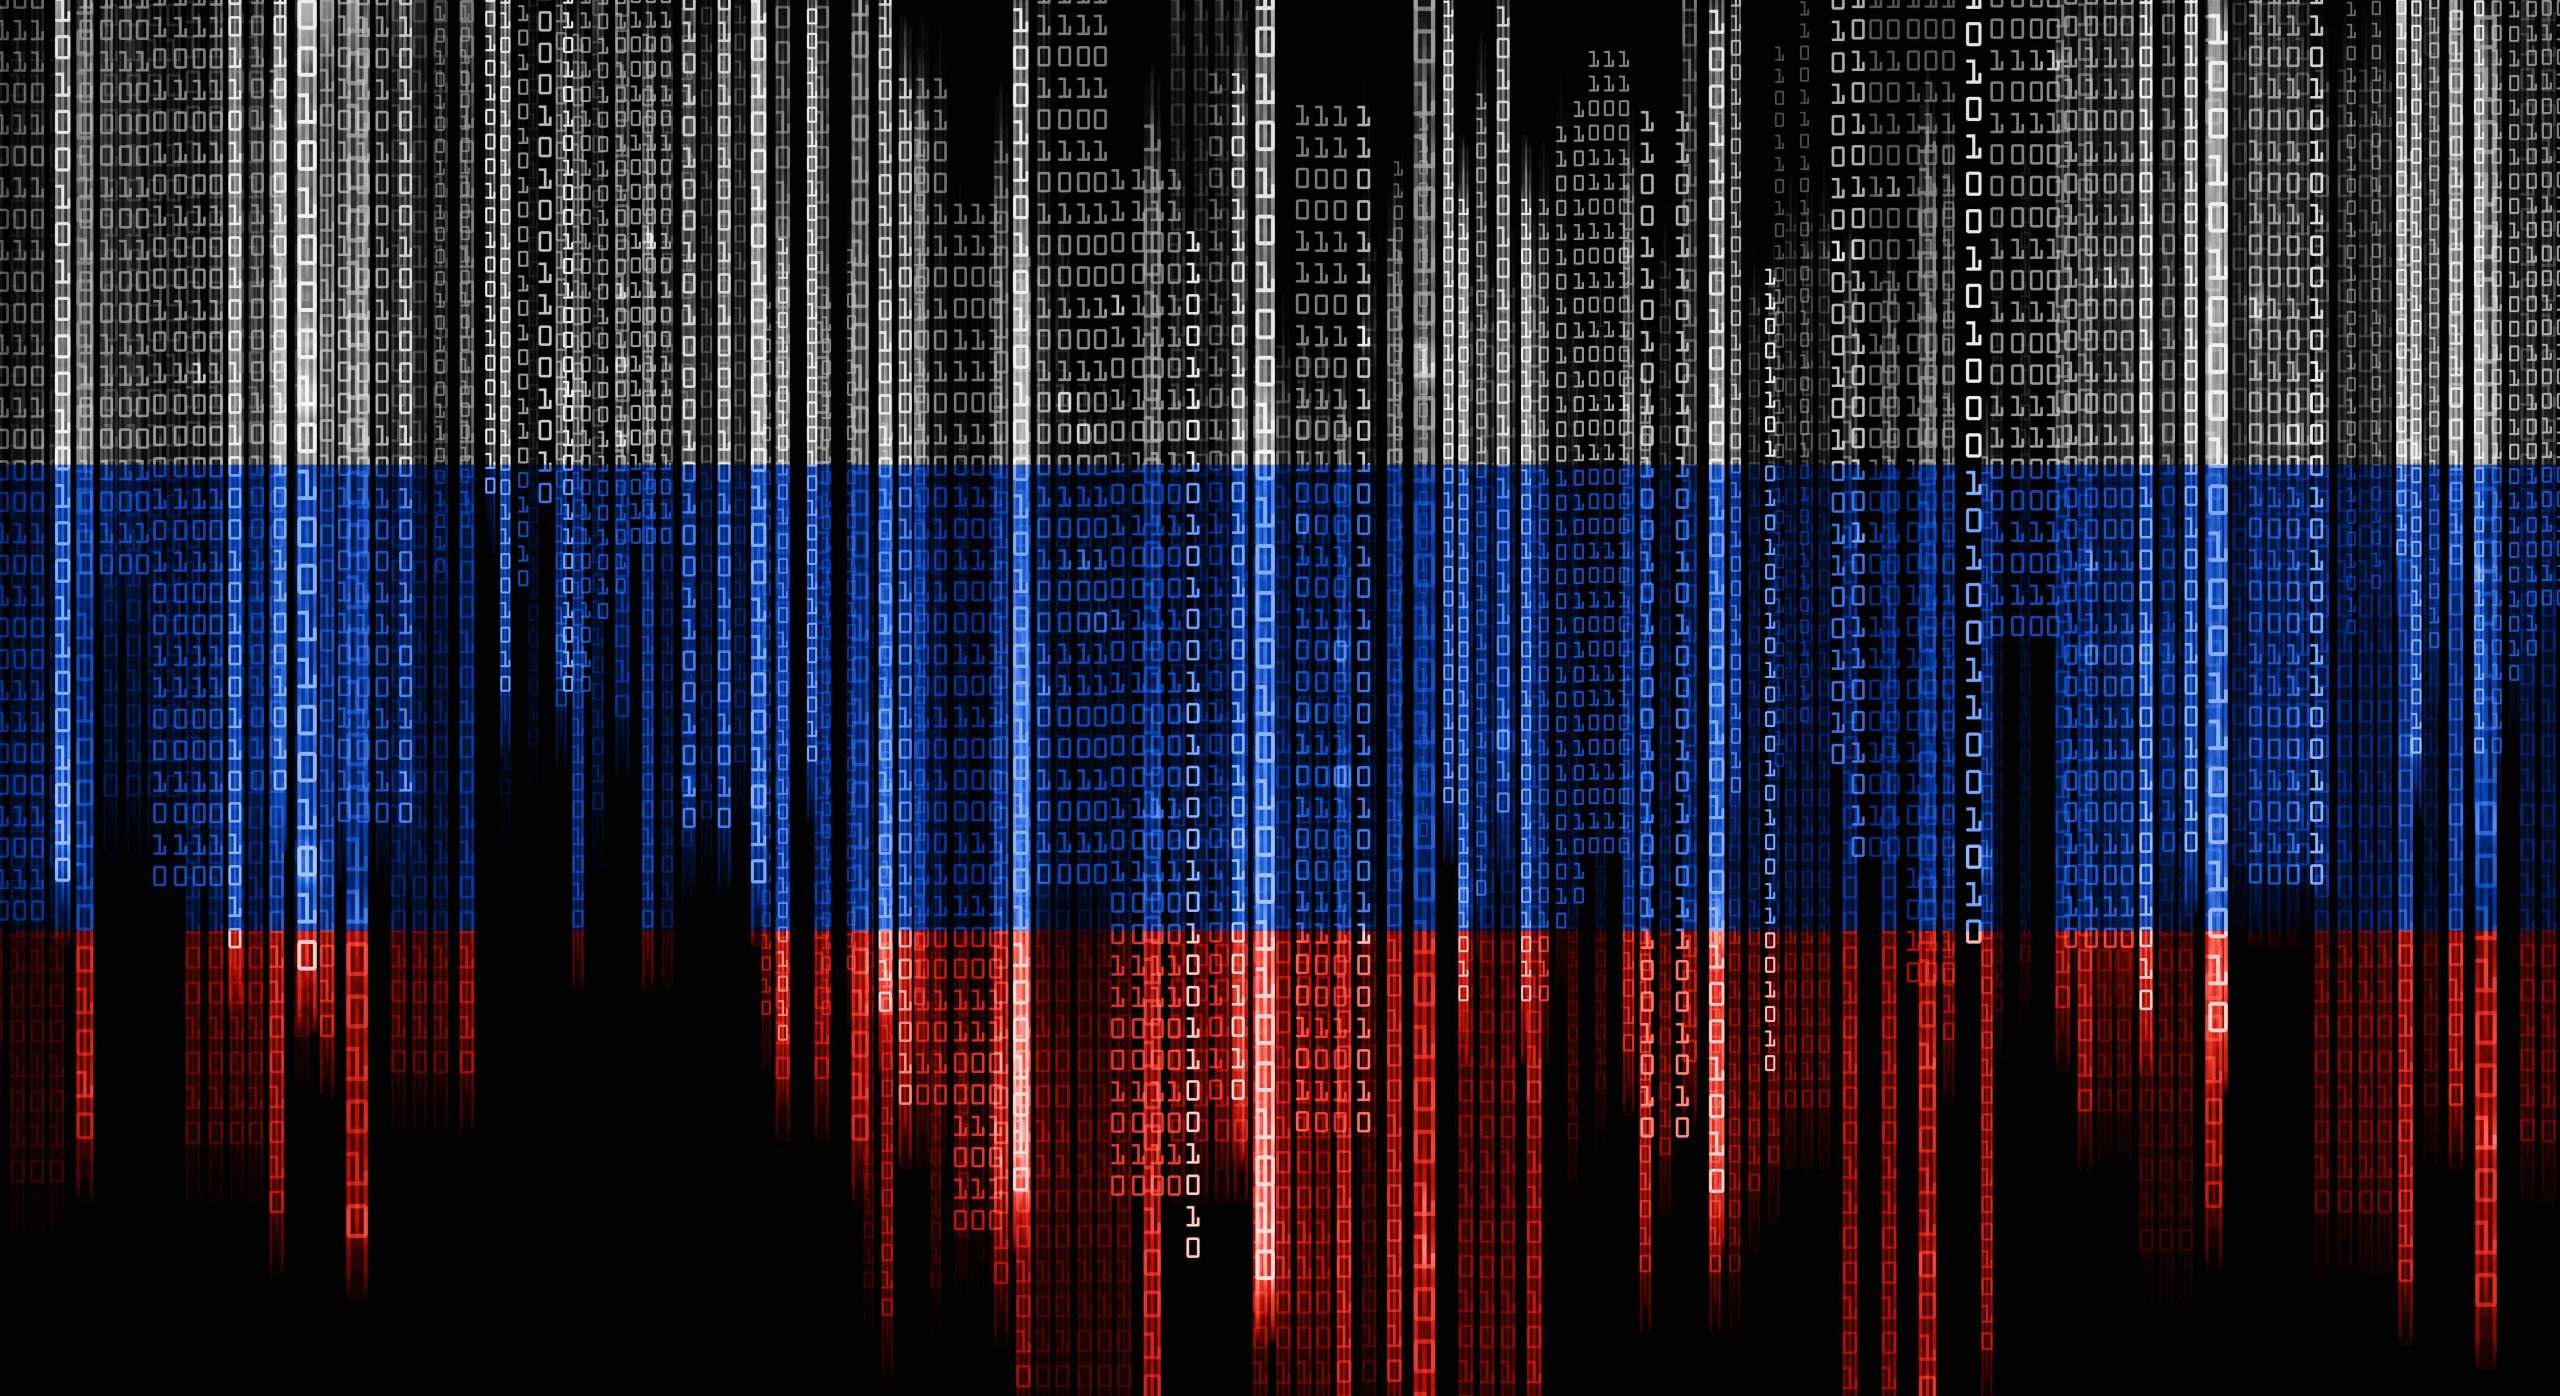 A Conversation With Alisa Esage, a Russian Hacker Who Had Her Company Sanctioned After the 2016 Election